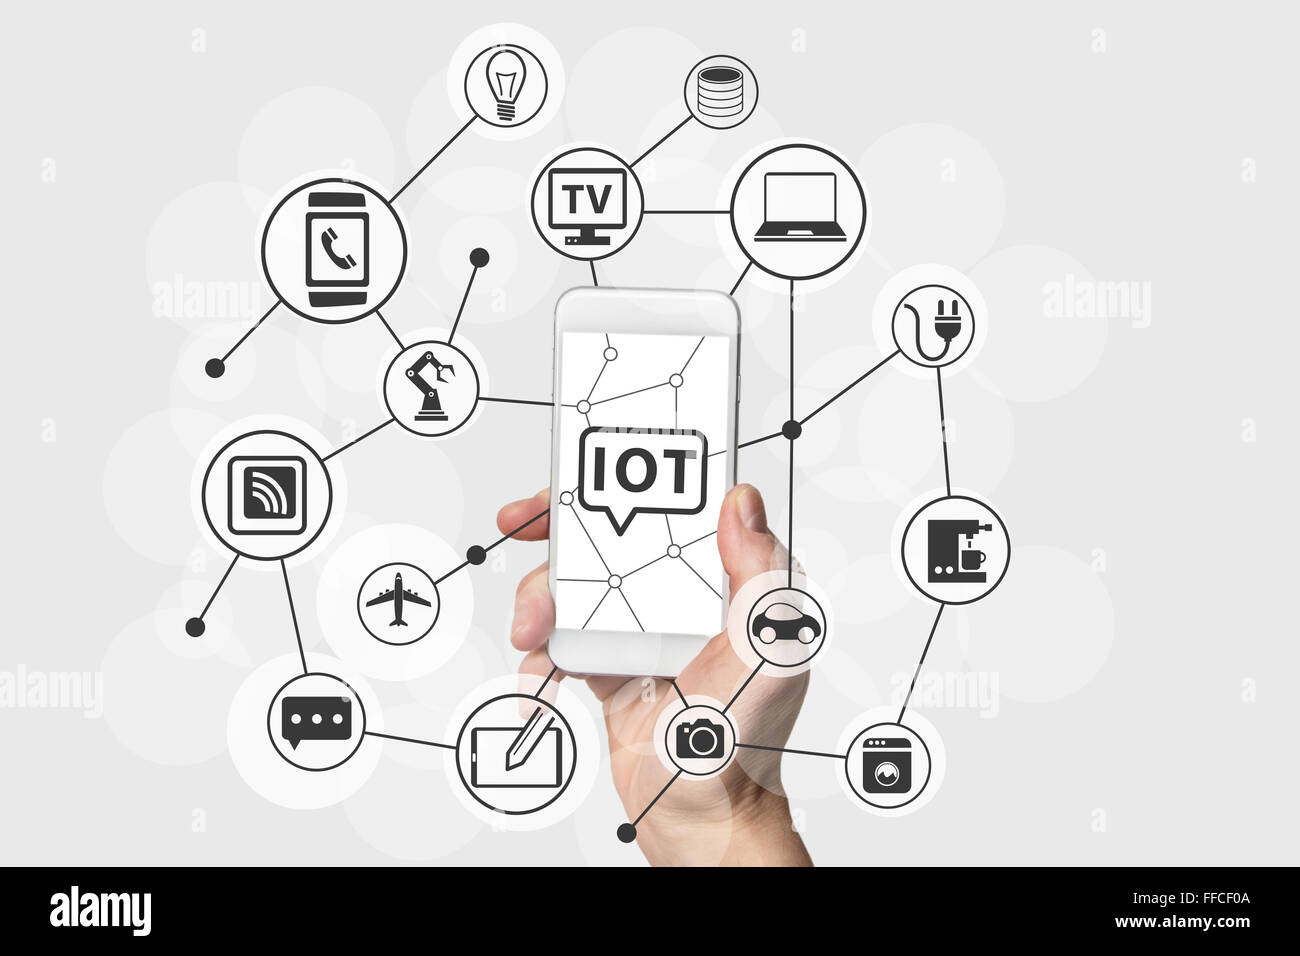 Internet of Things (IOT) concept with hand holding modern white and silver smart phone. Connected devices in the - Stock Image